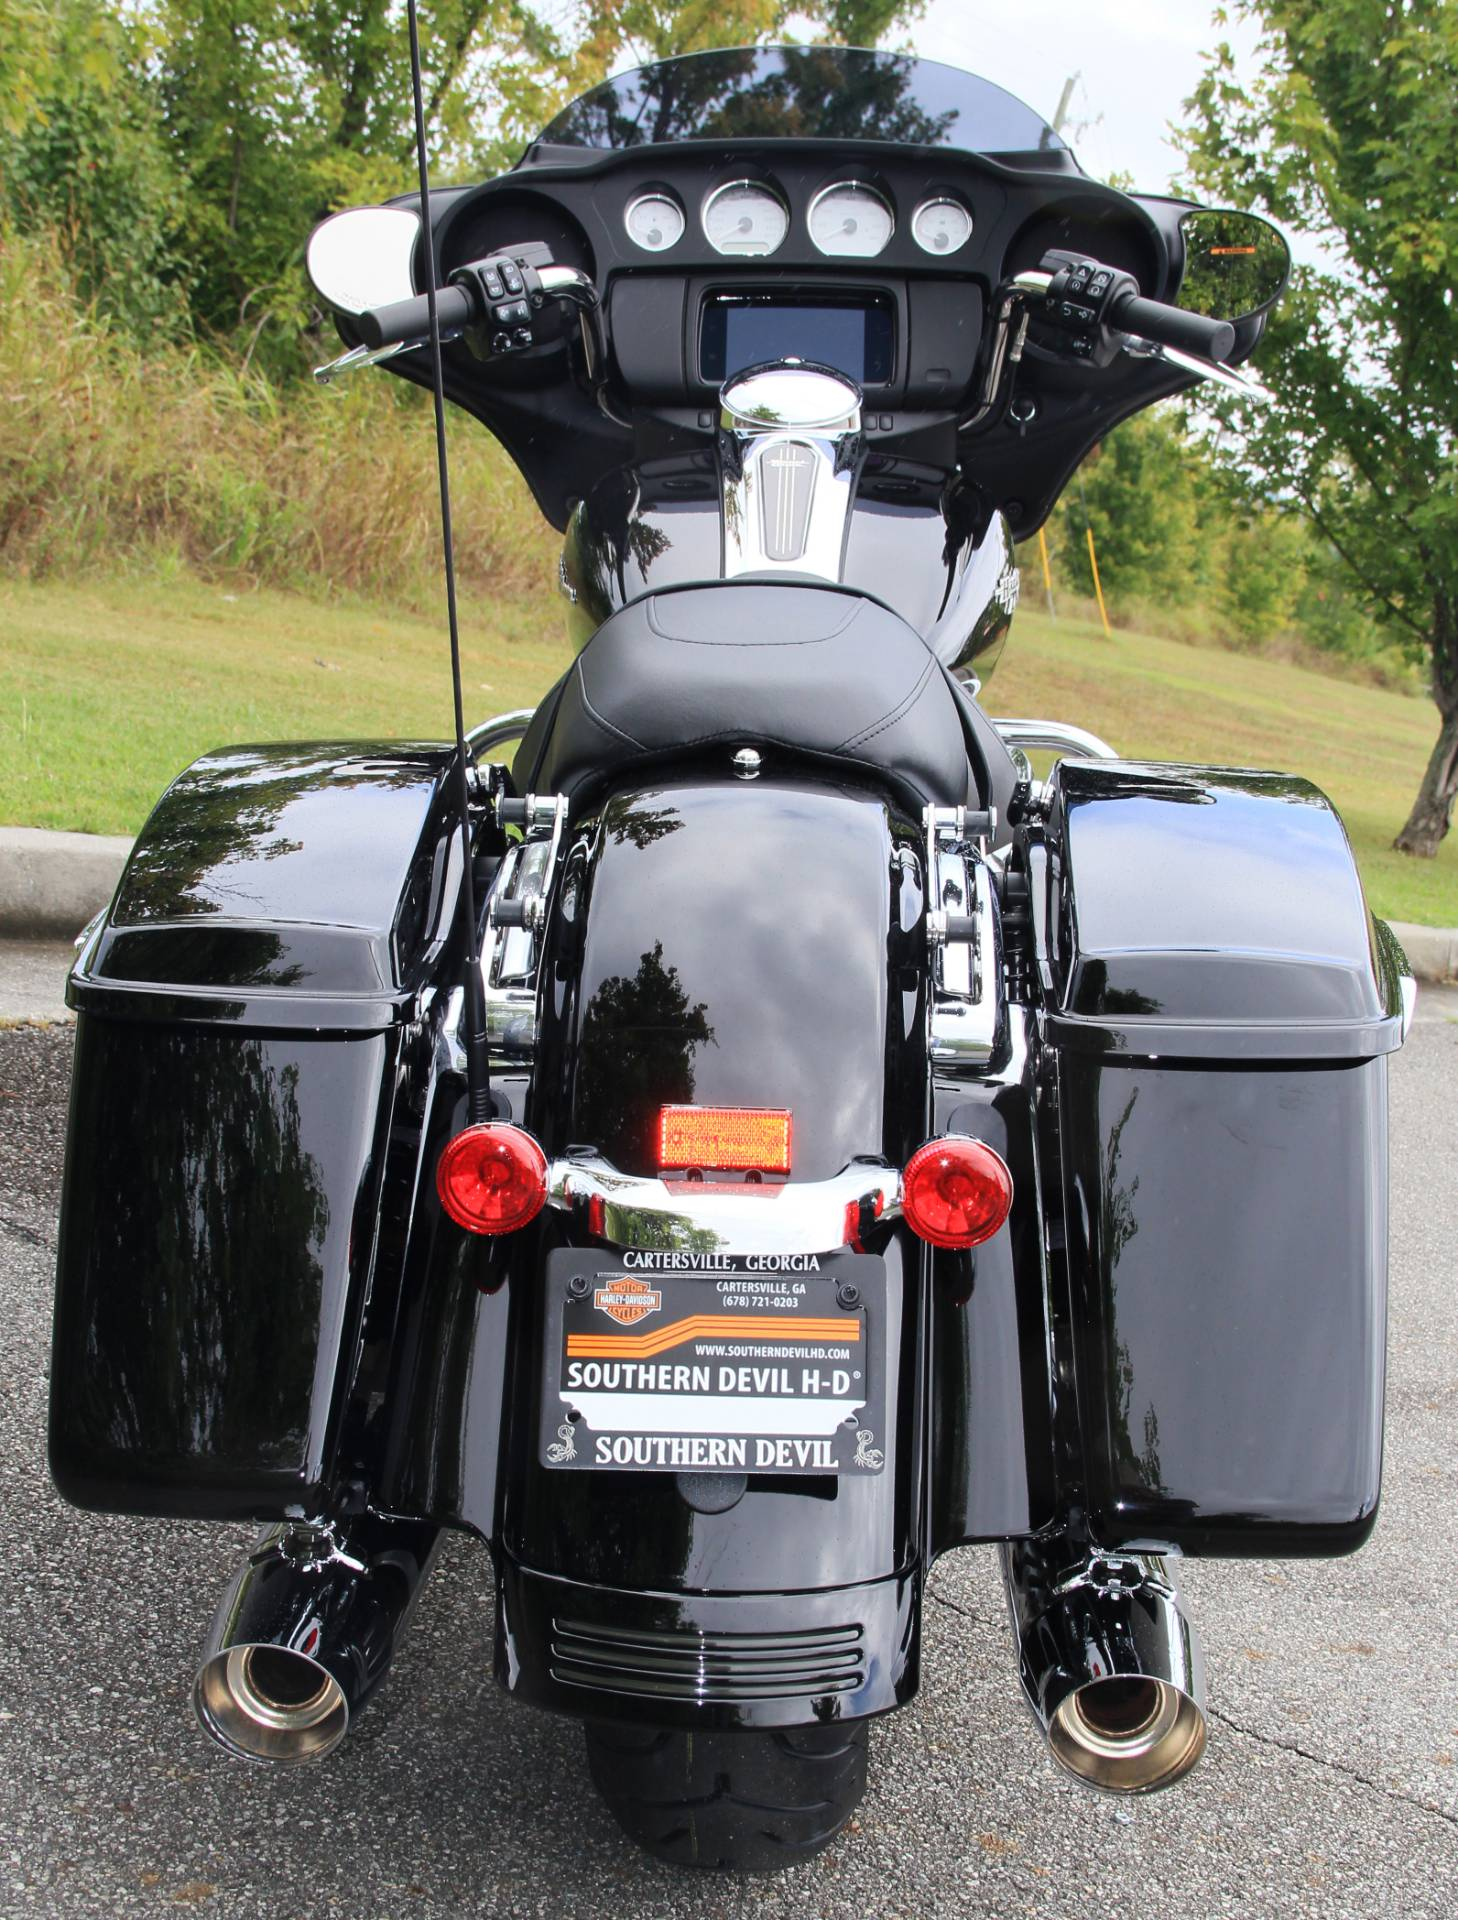 2020 Harley-Davidson Street Glide in Cartersville, Georgia - Photo 7